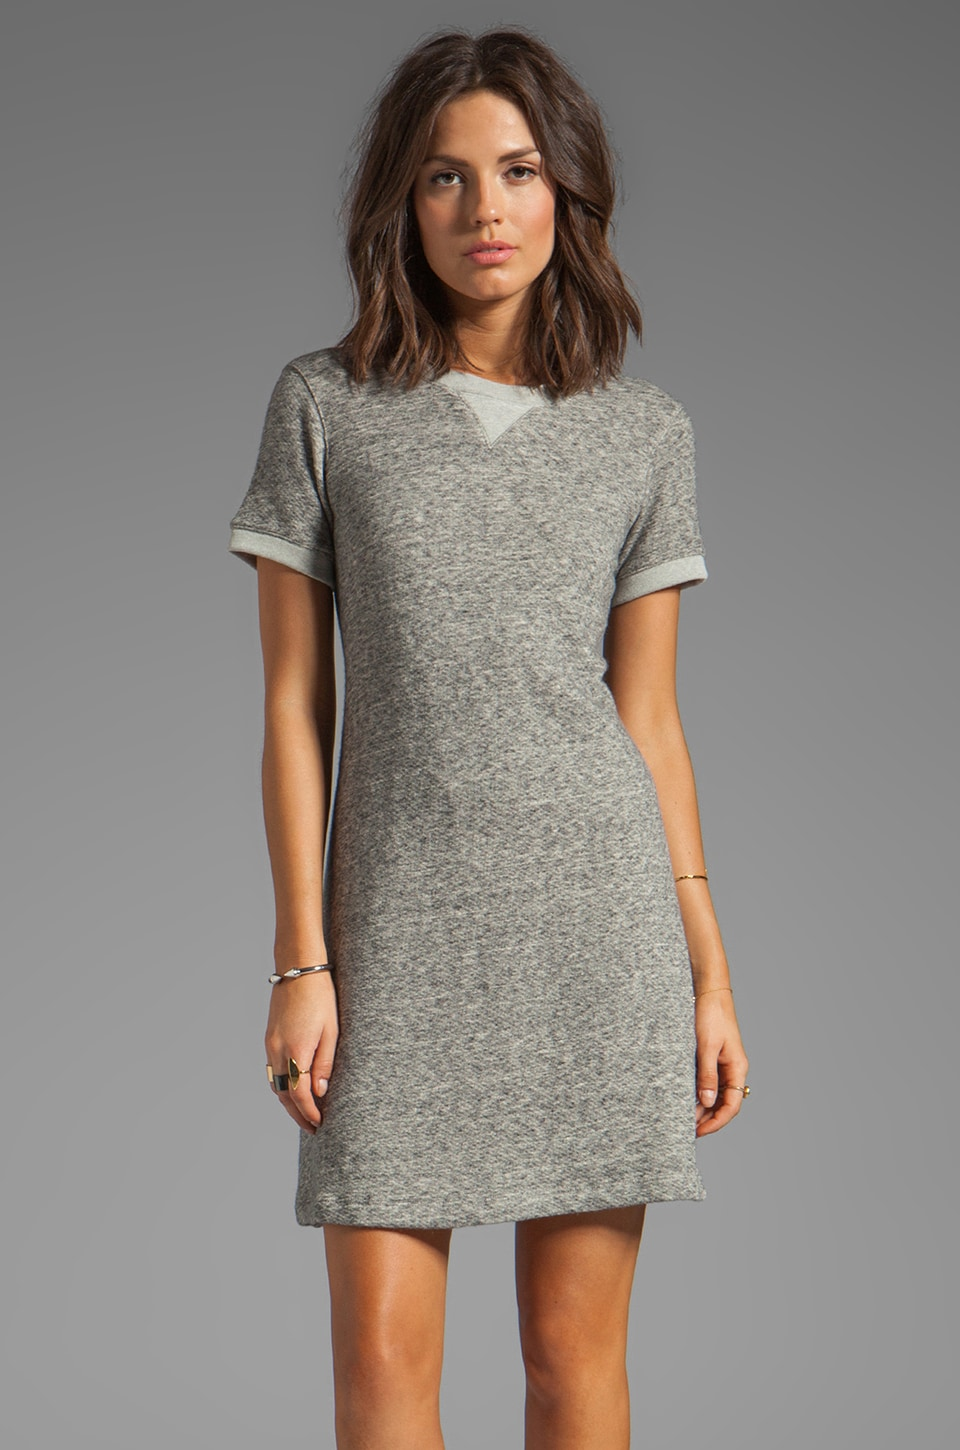 Theory Teju R Dress in Light Heather Grey